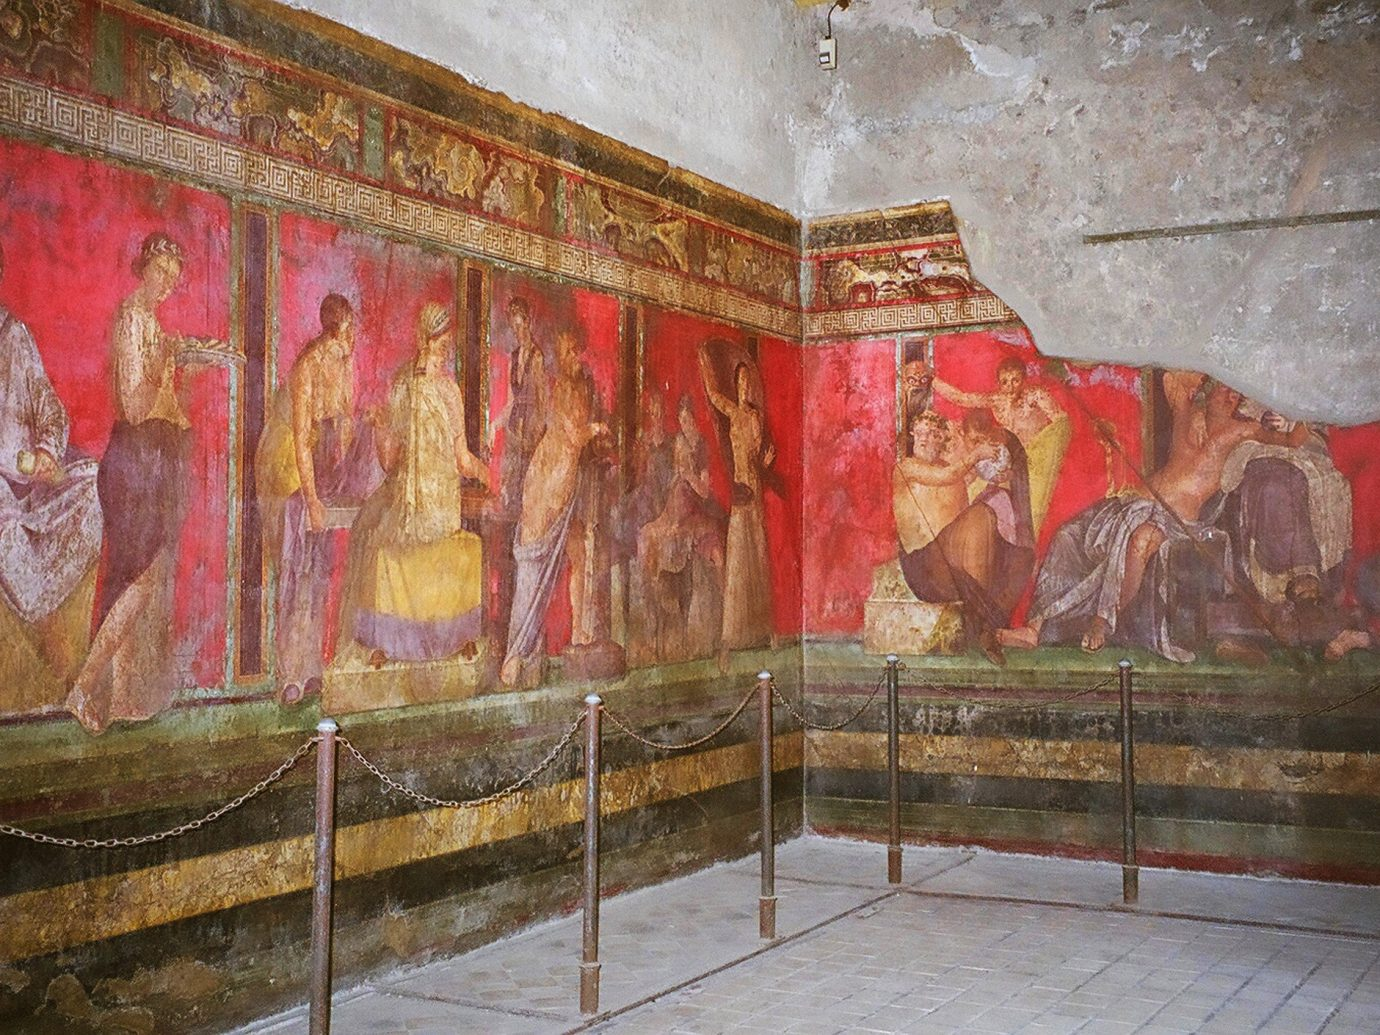 Arts + Culture Landmarks Trip Ideas wall art tourist attraction mural ancient history hindu temple history temple old painting place of worship religion middle ages chapel stock photography area painted dirty